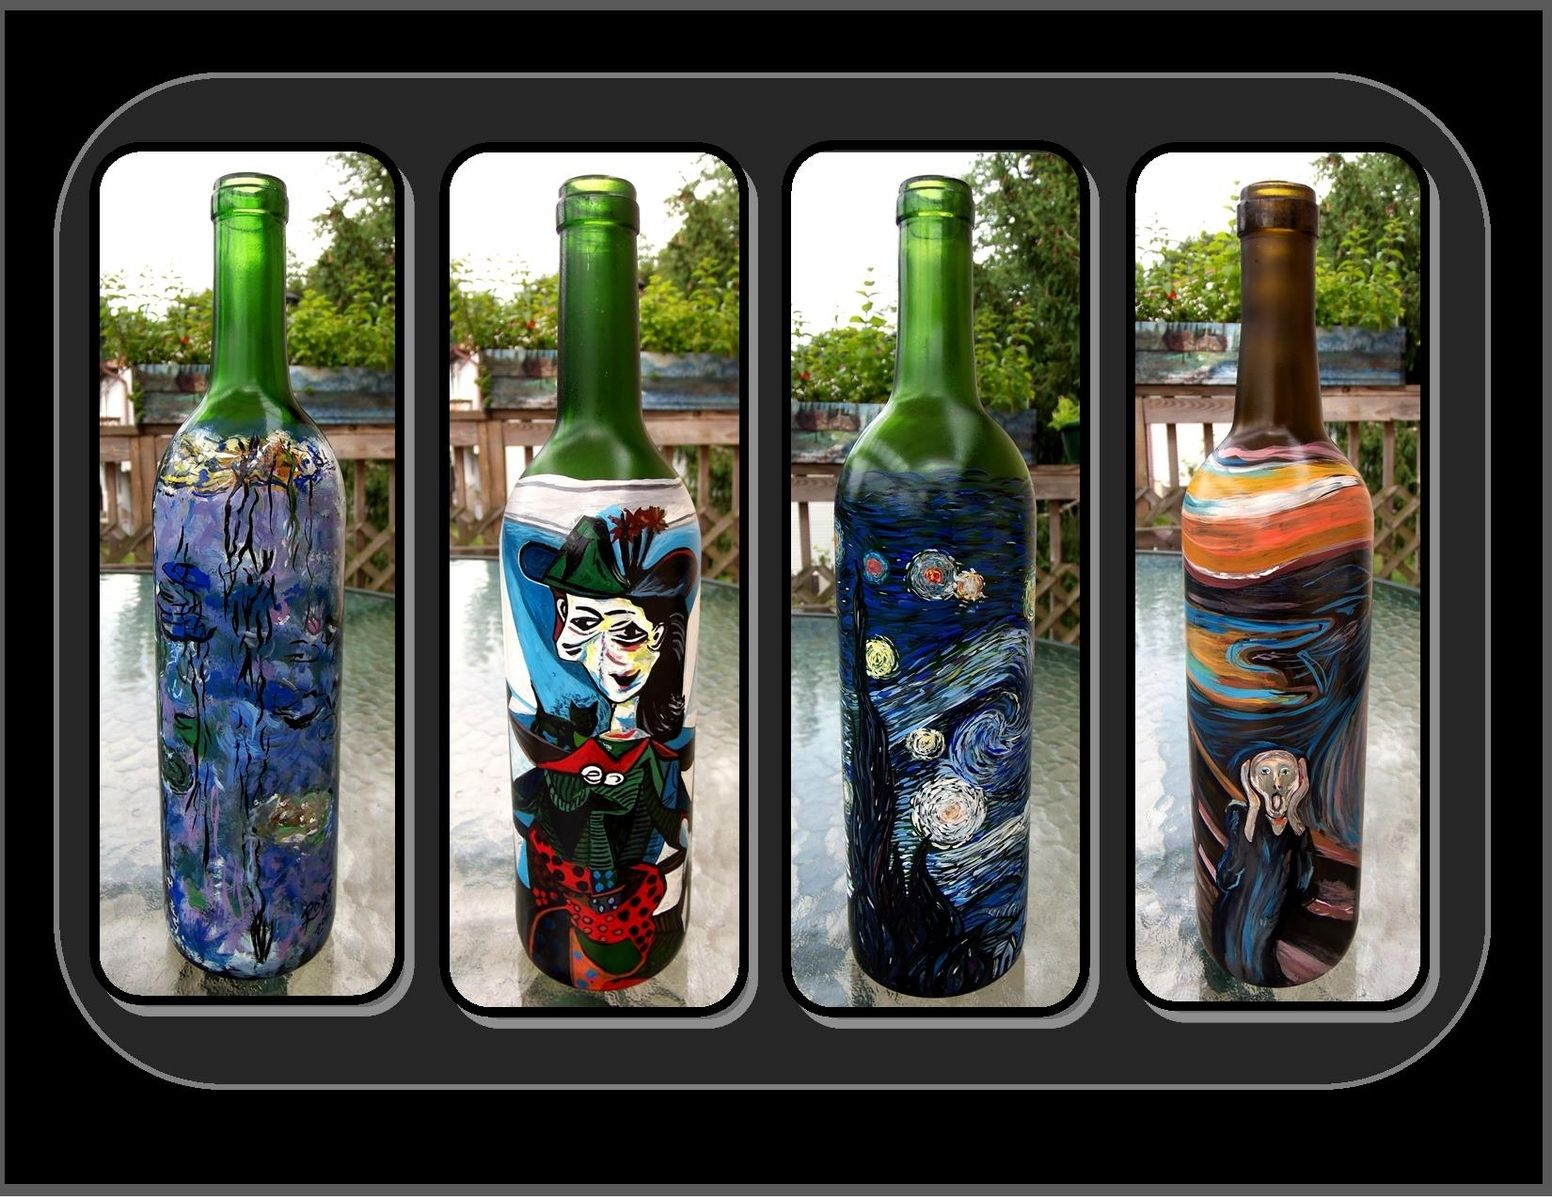 Kitchen art wine - Buy A Hand Crafted Claude Monet Water Lilies Materpiece Wine Bottle Wine Art Kitchen Art Art Made To Order From Artistic Creations By Rose